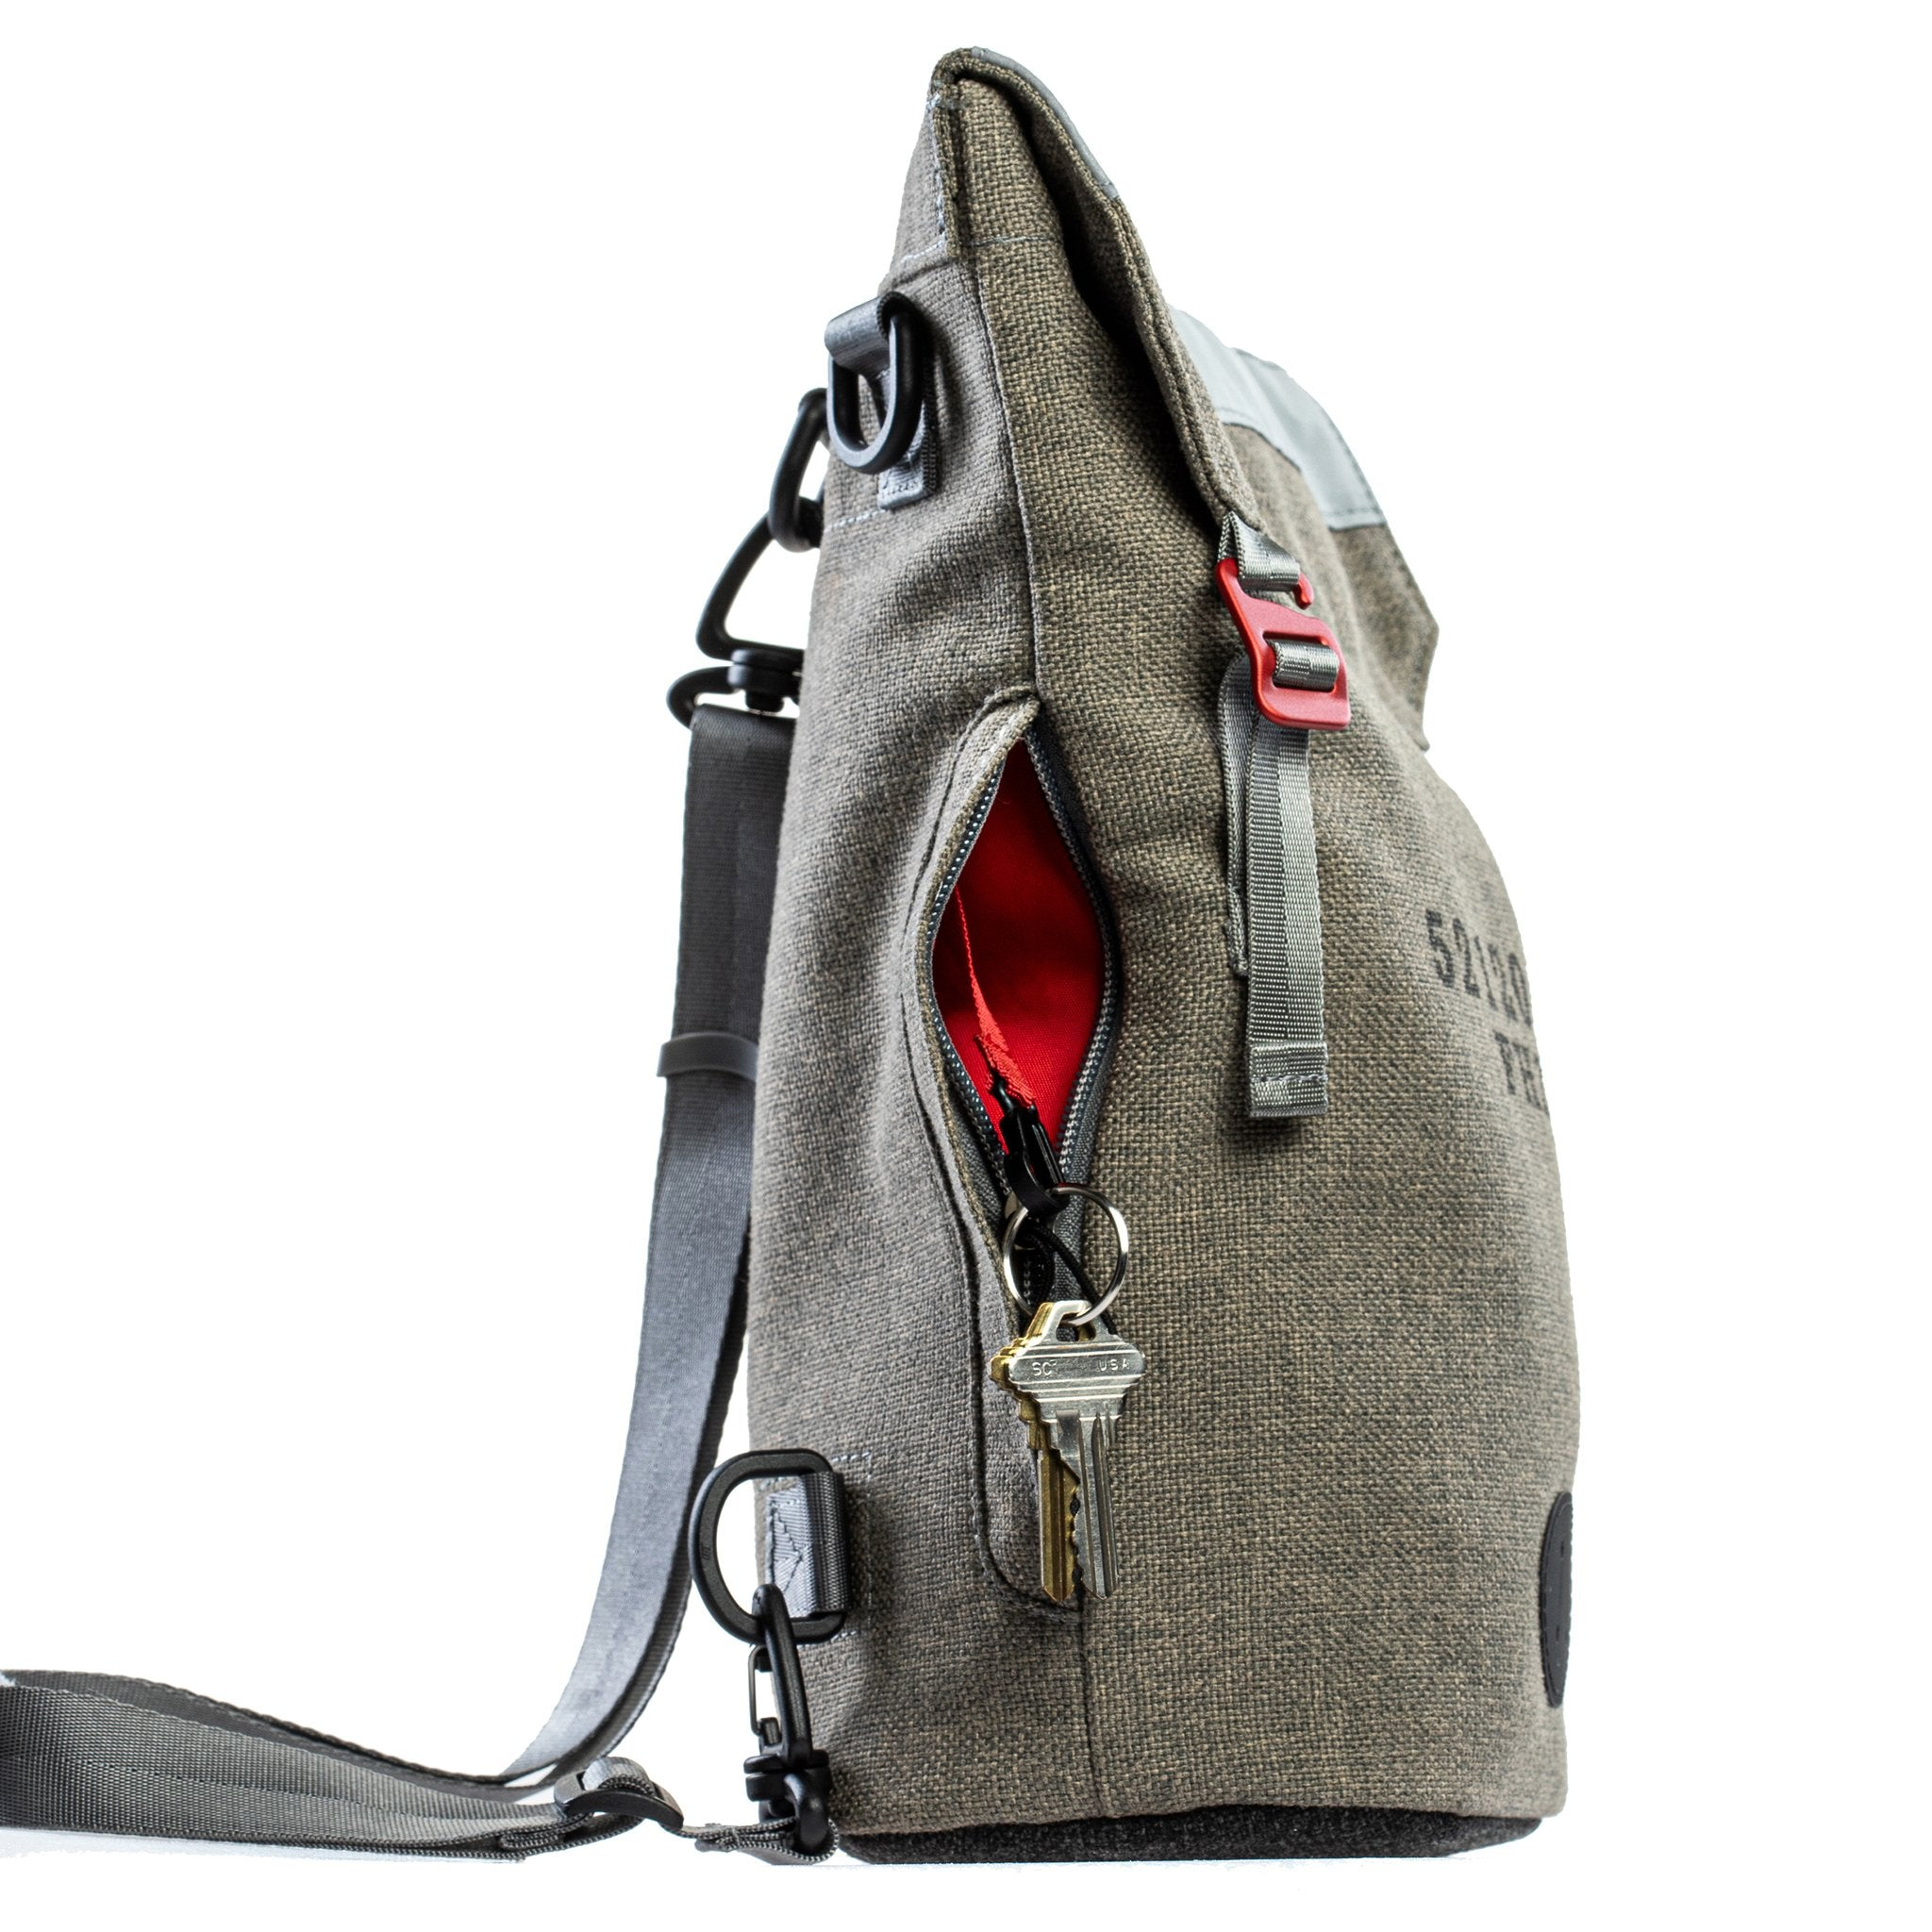 Side view of a Fierce Hazel convertible backpack made with sustainable fabric. Red interior and key clip. Functional, rugged and water-resistant it is military styled but beautiful